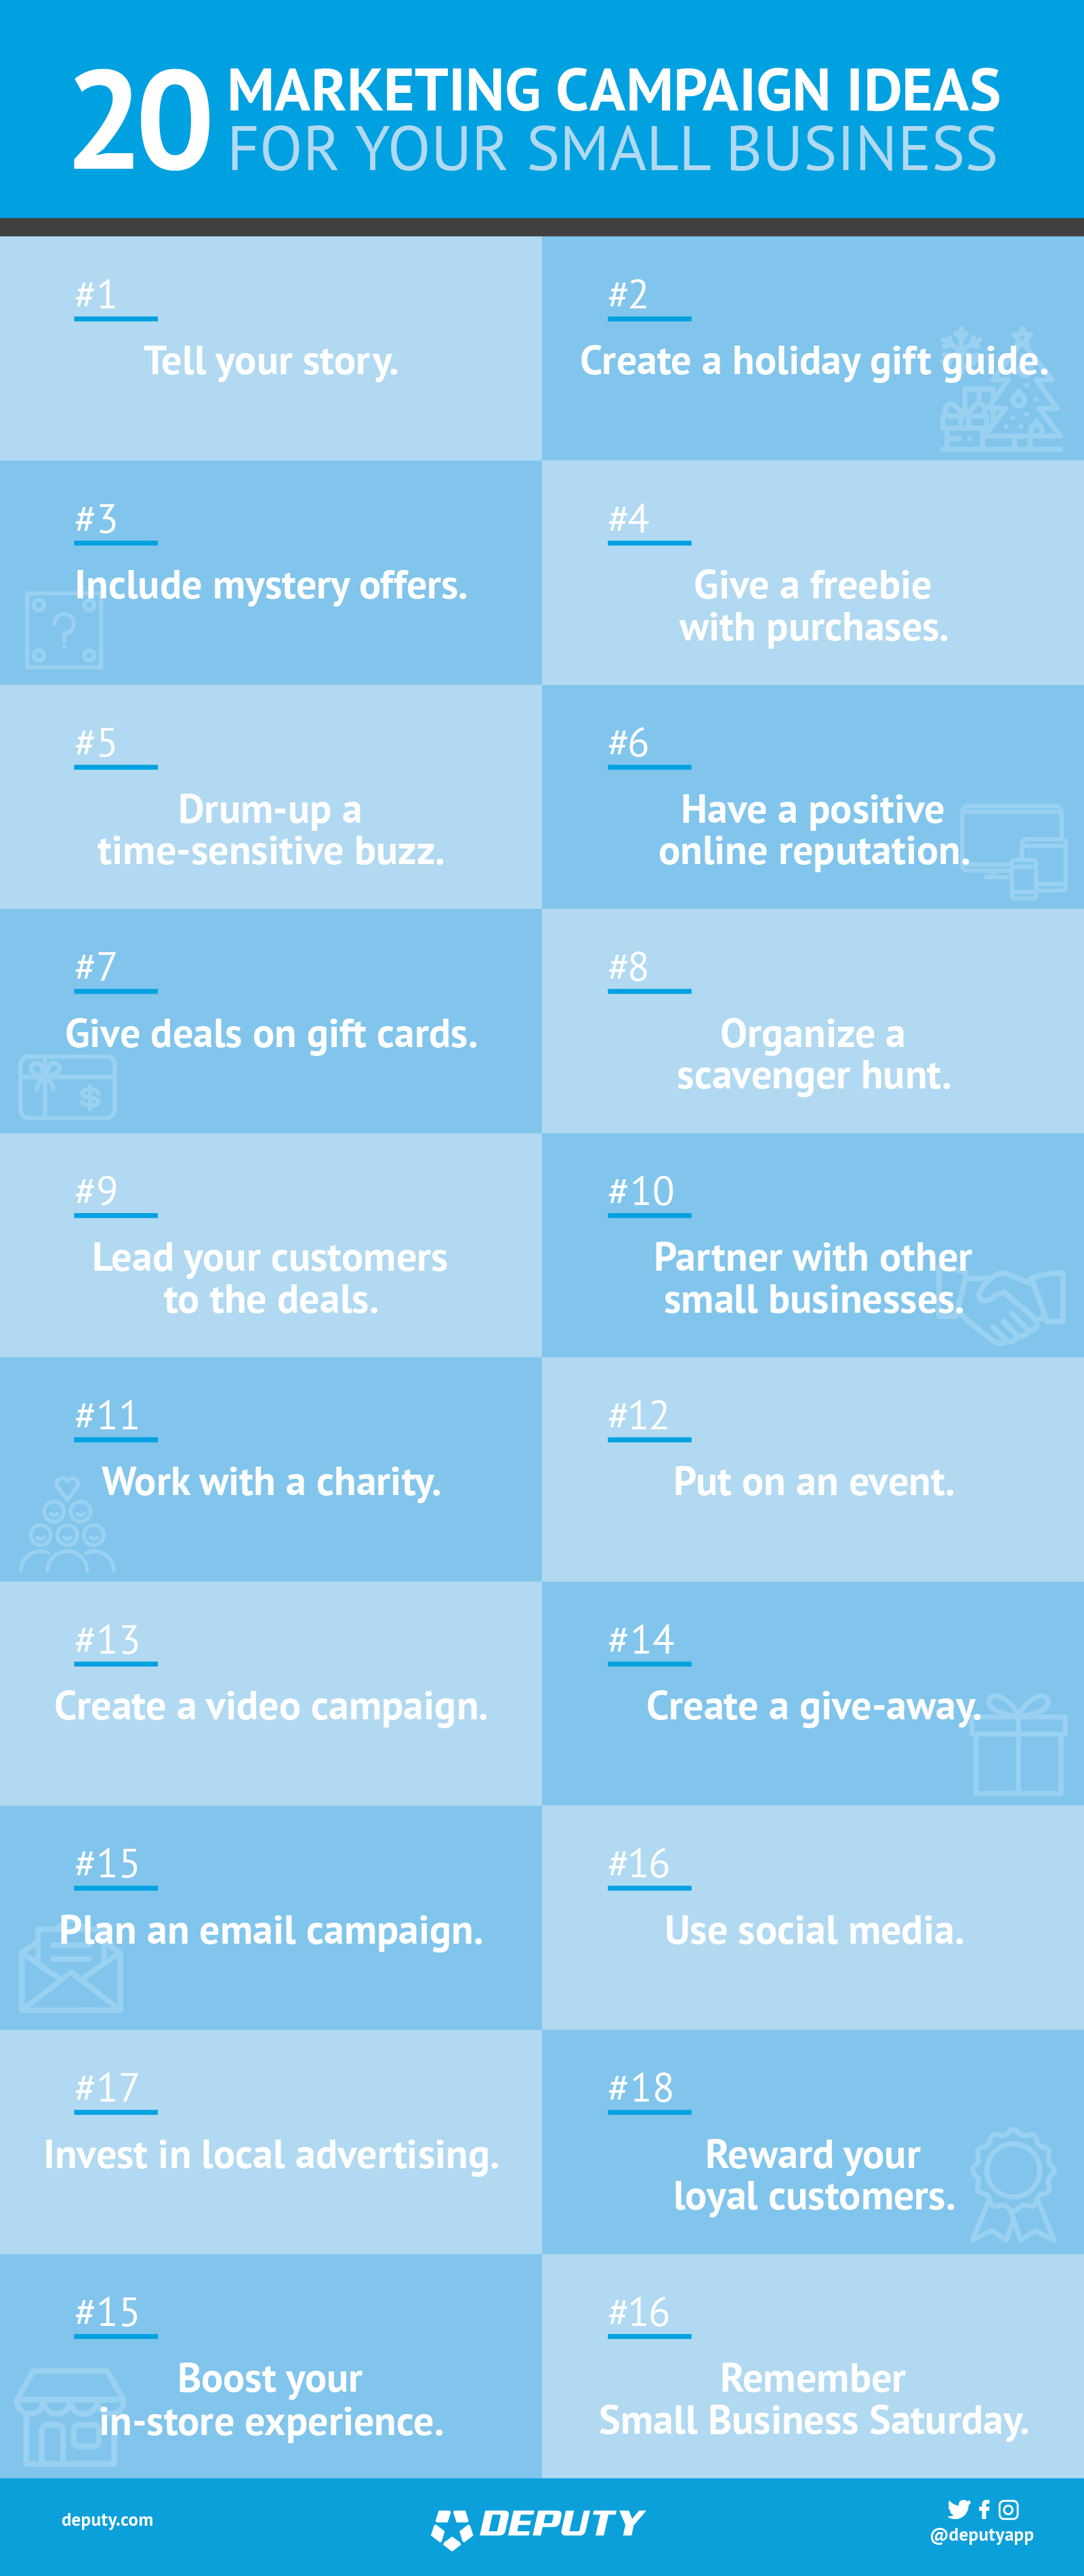 Deputy-20 marketing campaign ideas for your small business-infographic-03